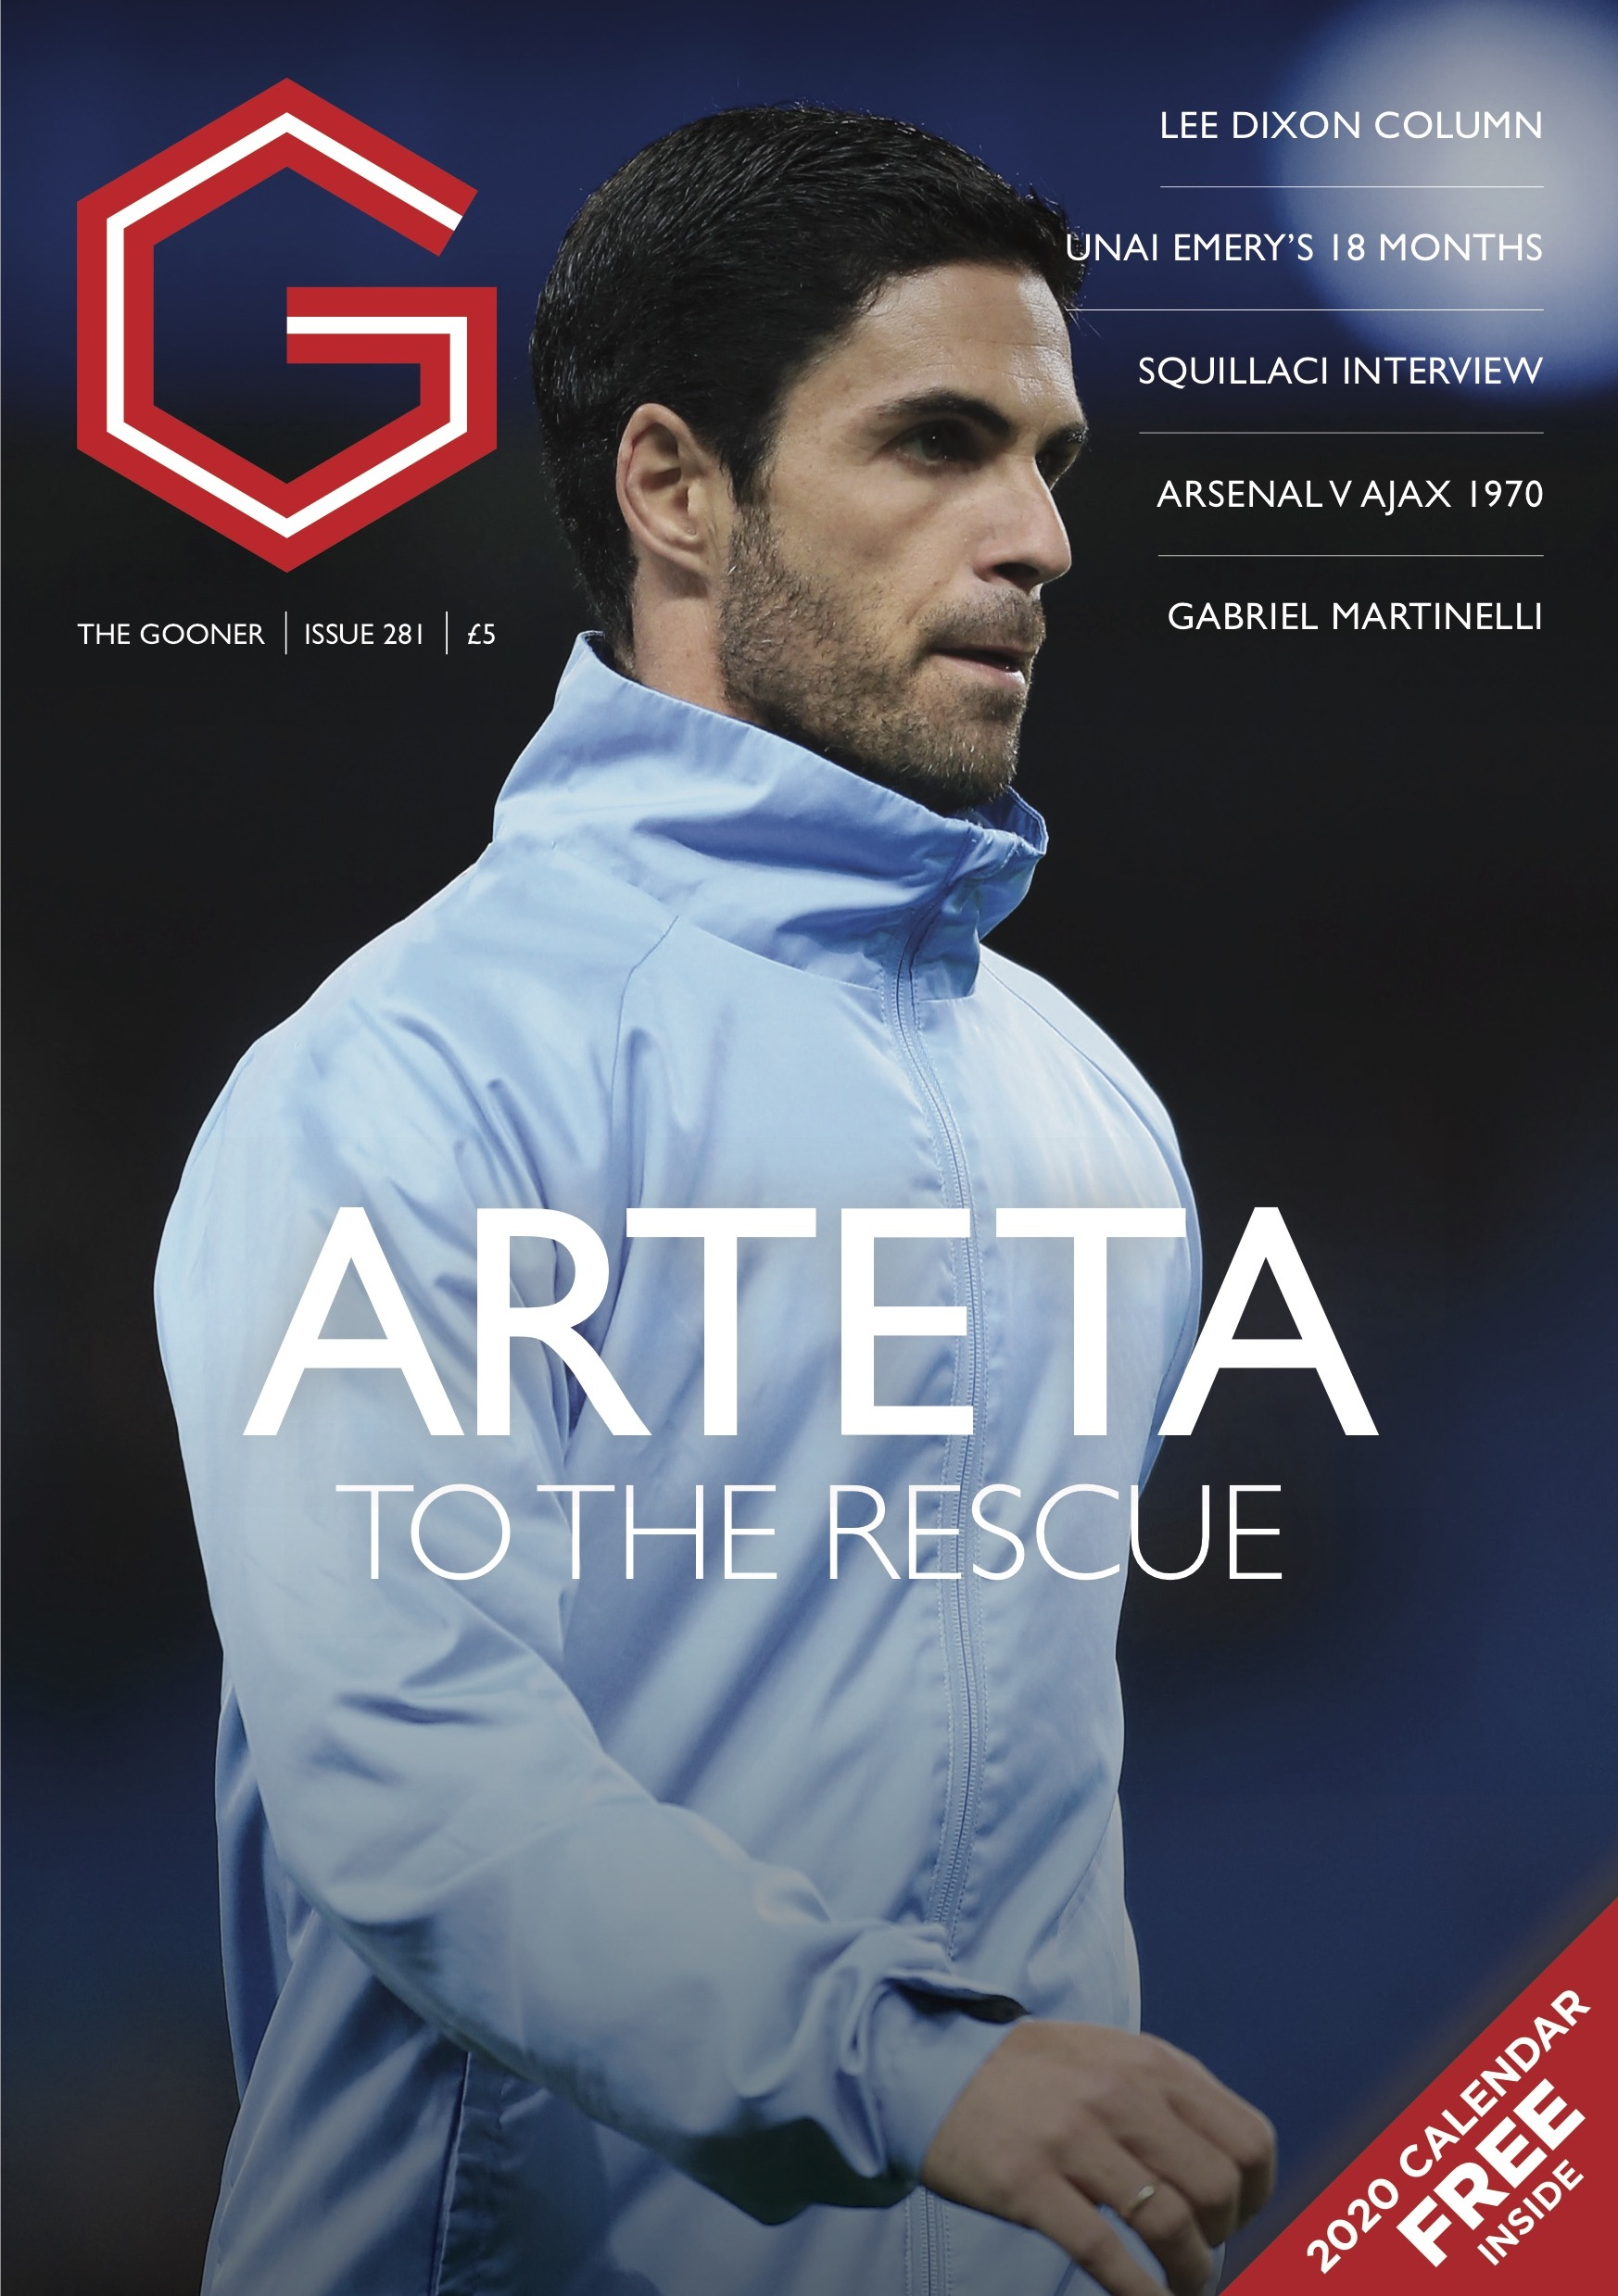 Gooner Issue 281 - Front Cover